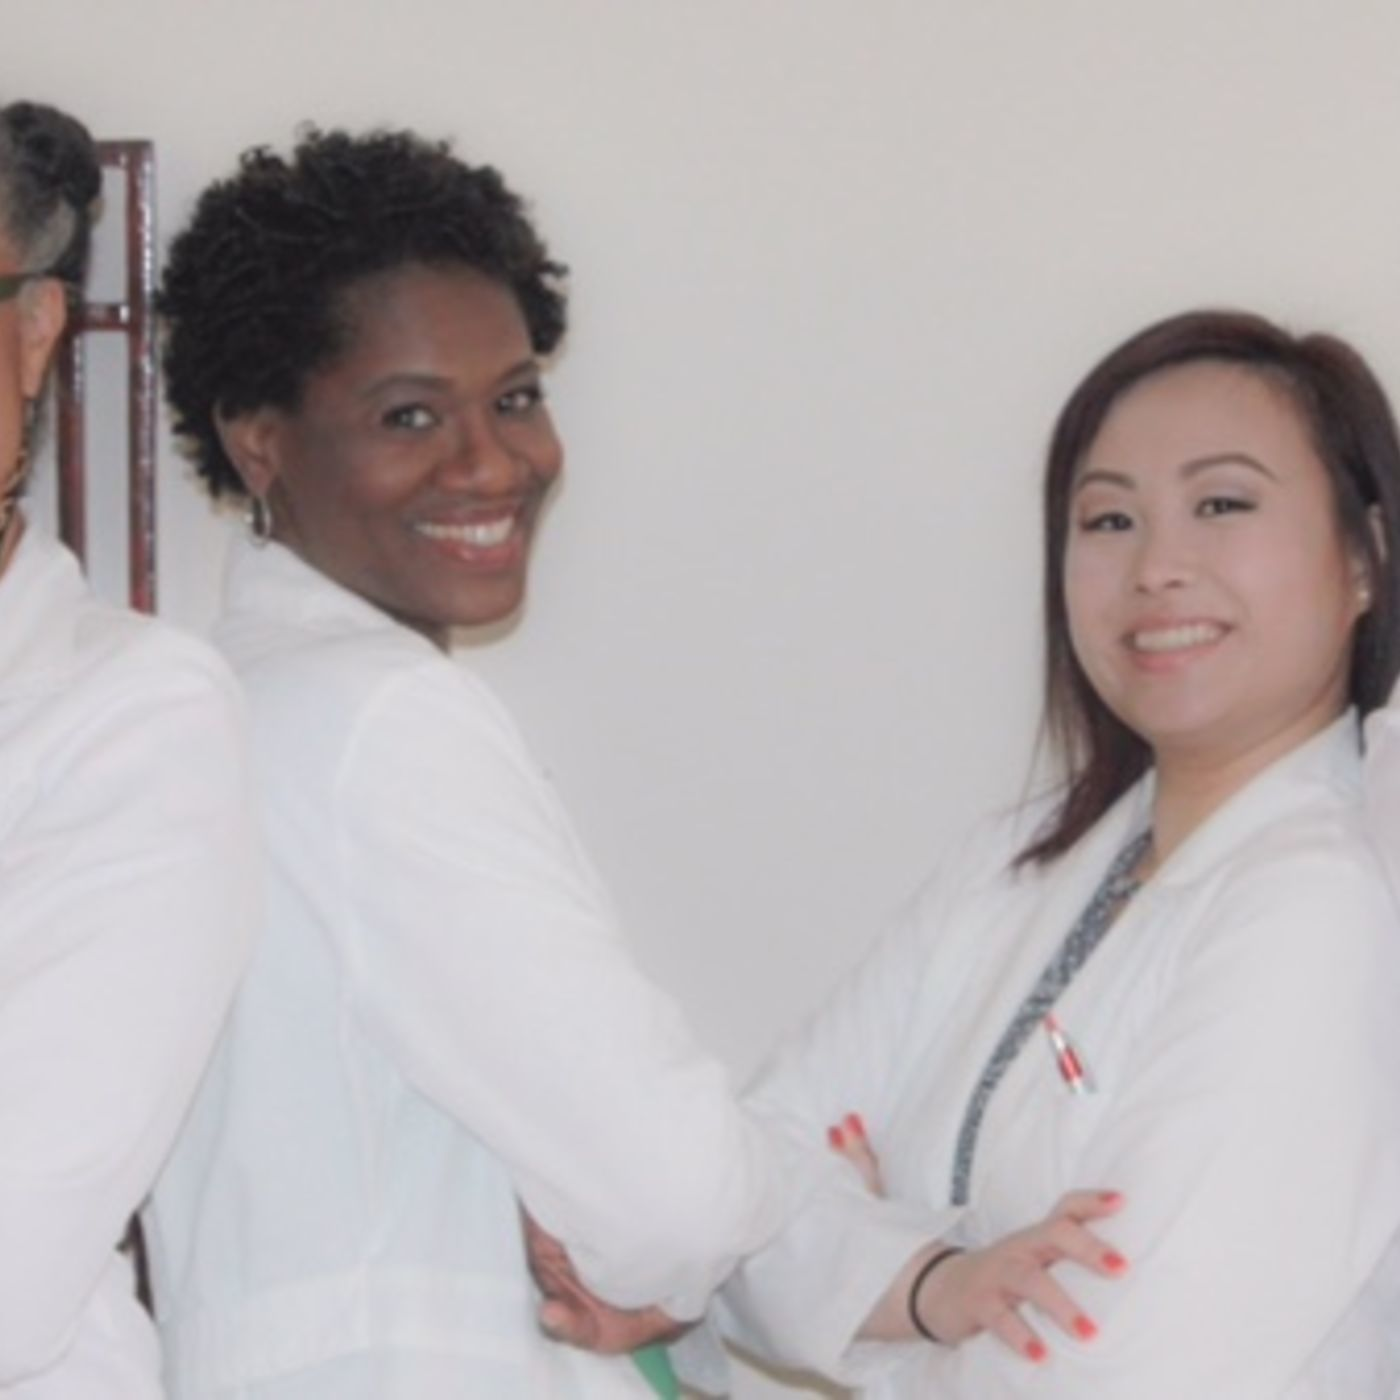 Episode - 092: Does that Type of Medicine Really Work?--with Dr. Denise Tyson and Dr. Cindy Tran of AIHG